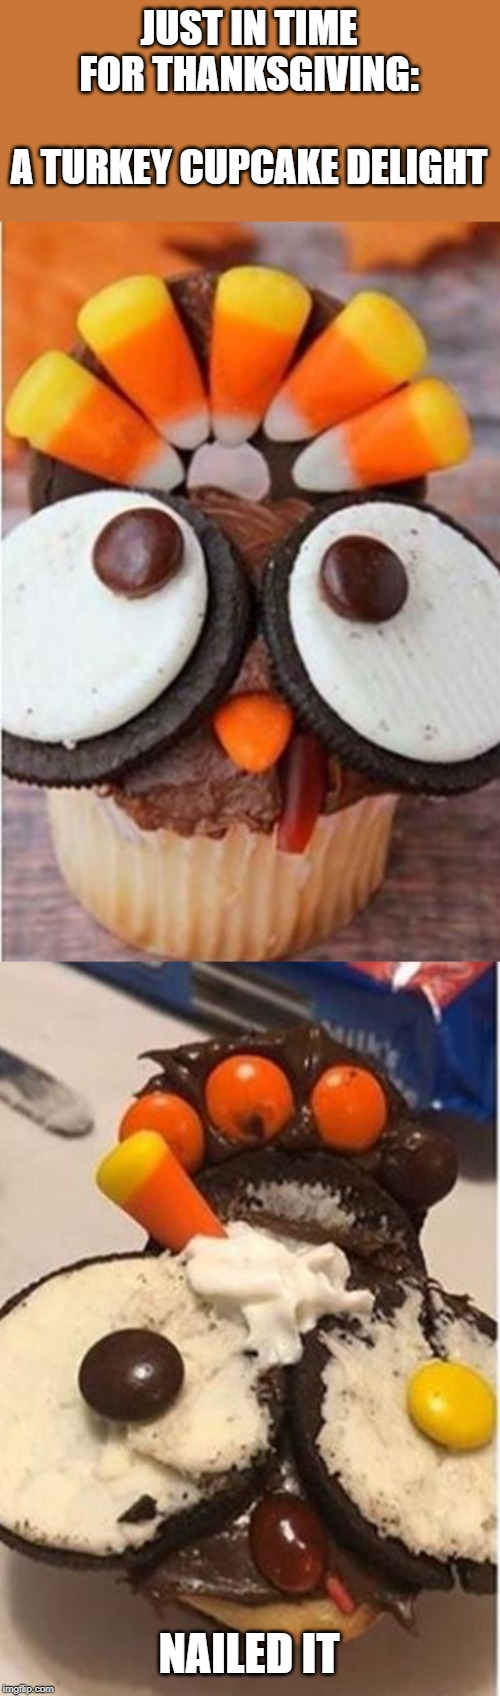 Task failed successfully | JUST IN TIME FOR THANKSGIVING:   A TURKEY CUPCAKE DELIGHT NAILED IT | image tagged in memes,funny,turkey,nailed it,task failed successfully,thanksgiving | made w/ Imgflip meme maker